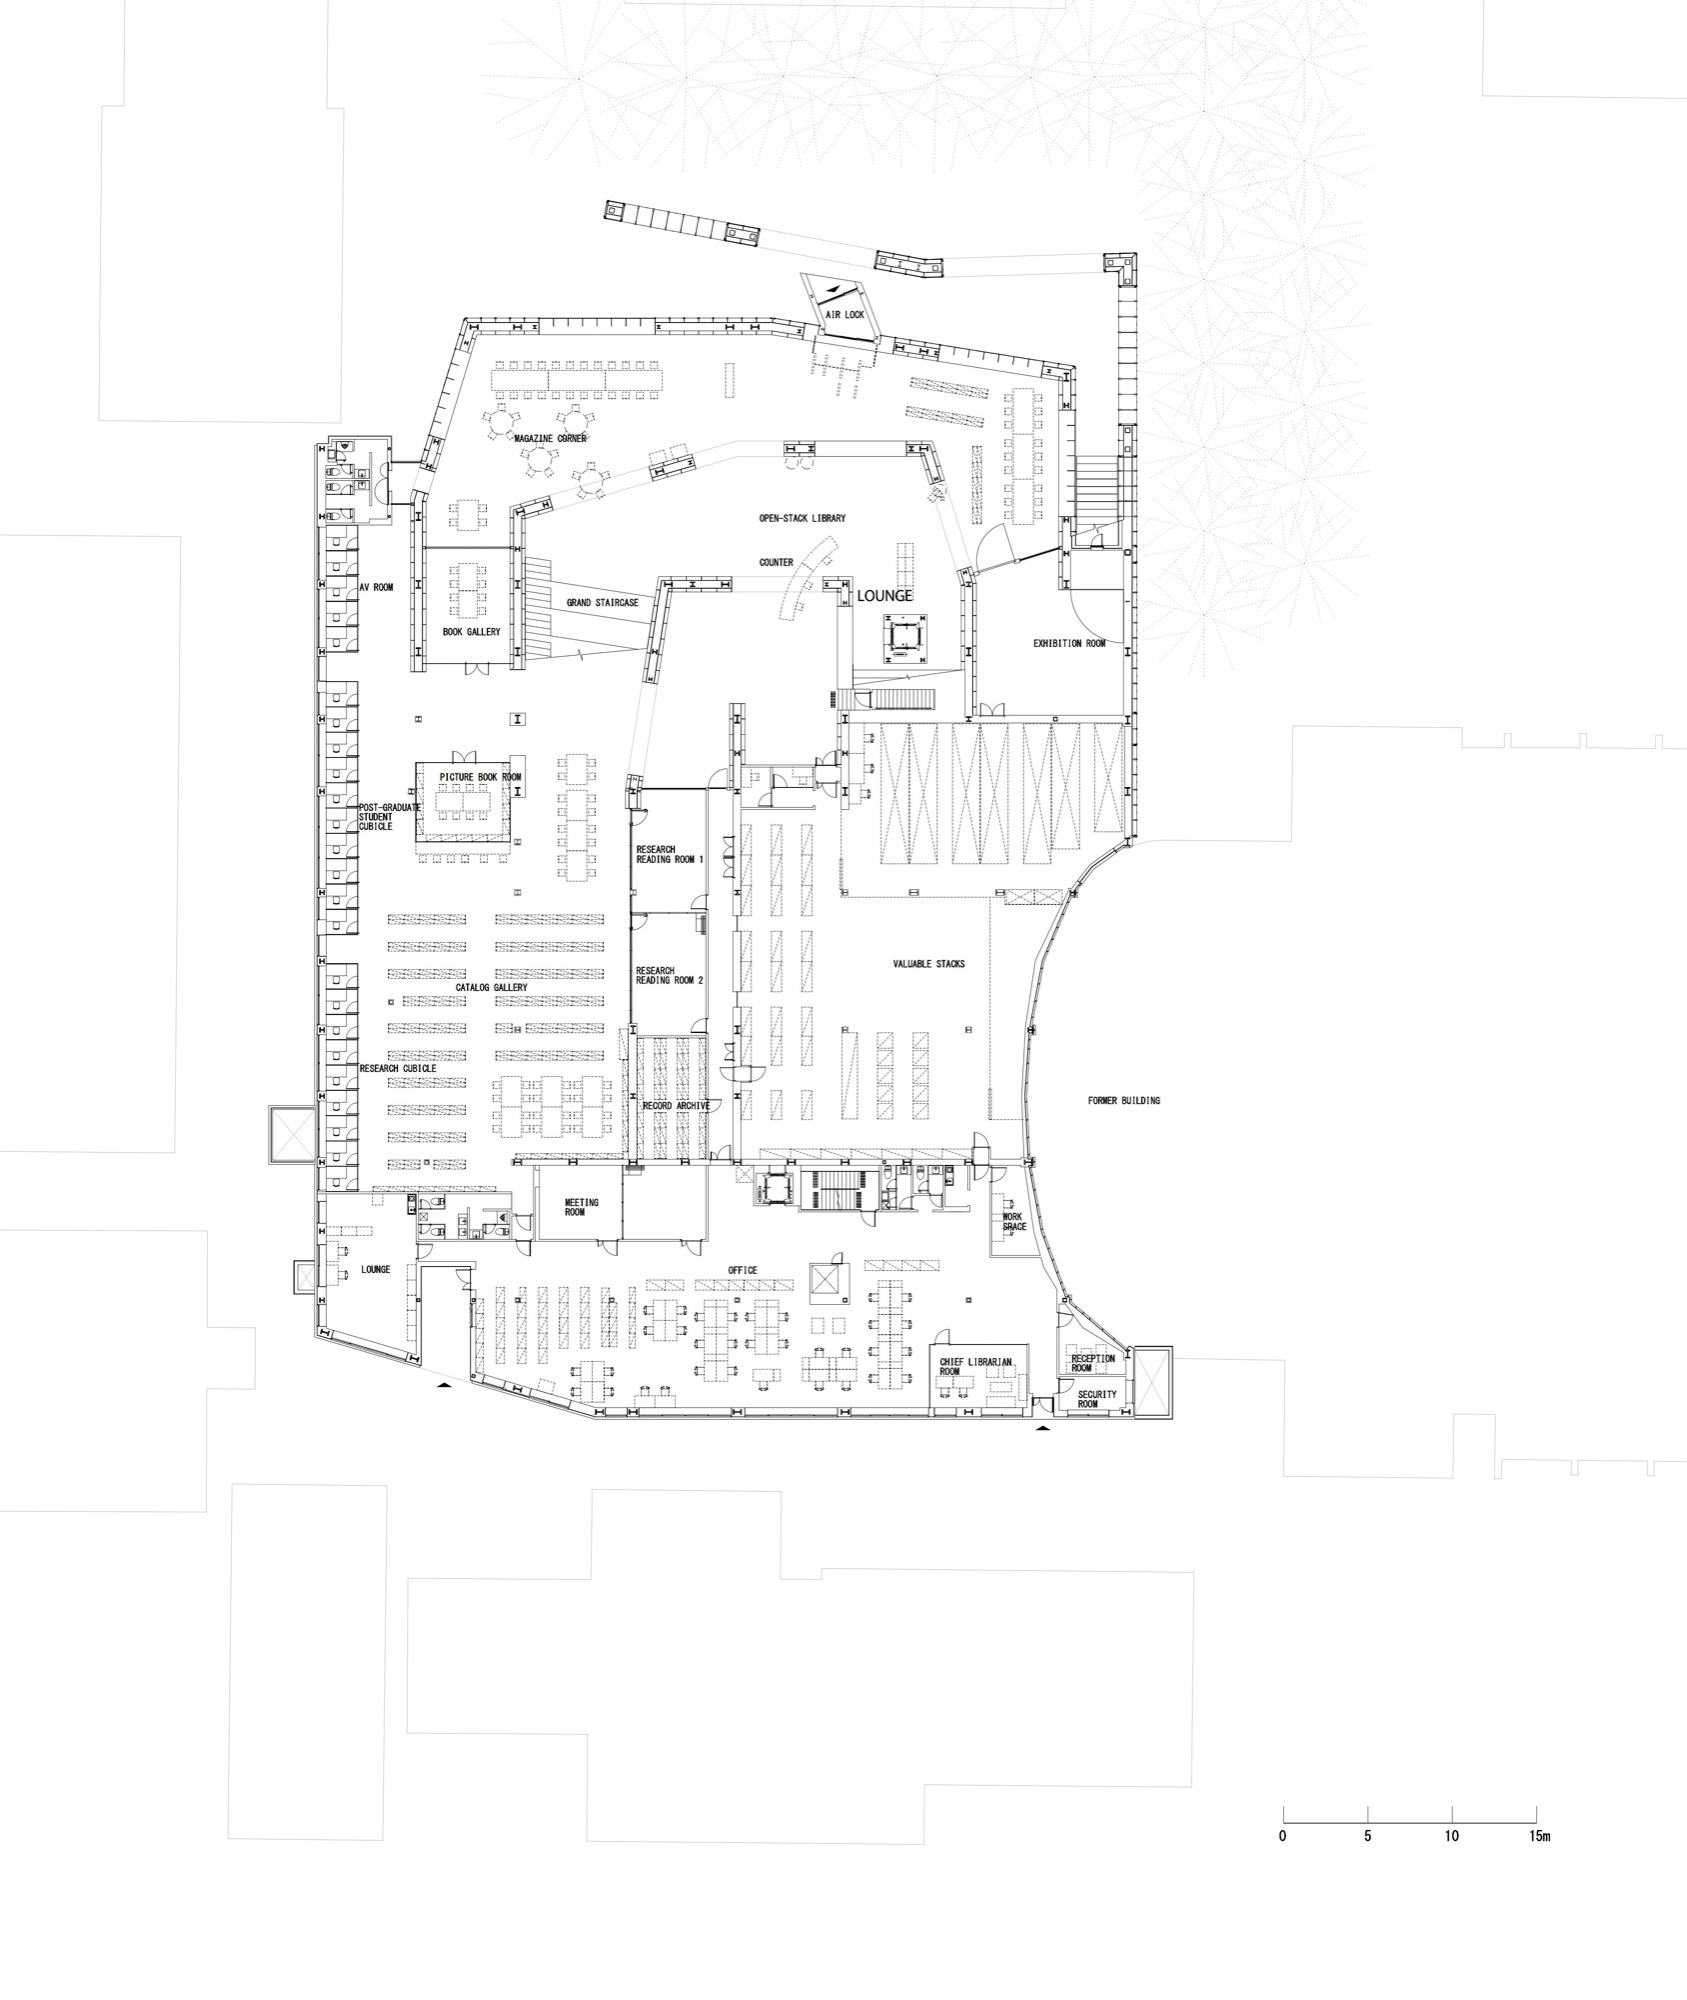 siheyuan floor plan justinpricewallace architecture urban musashino art university museum santiago vales below ground floor plan